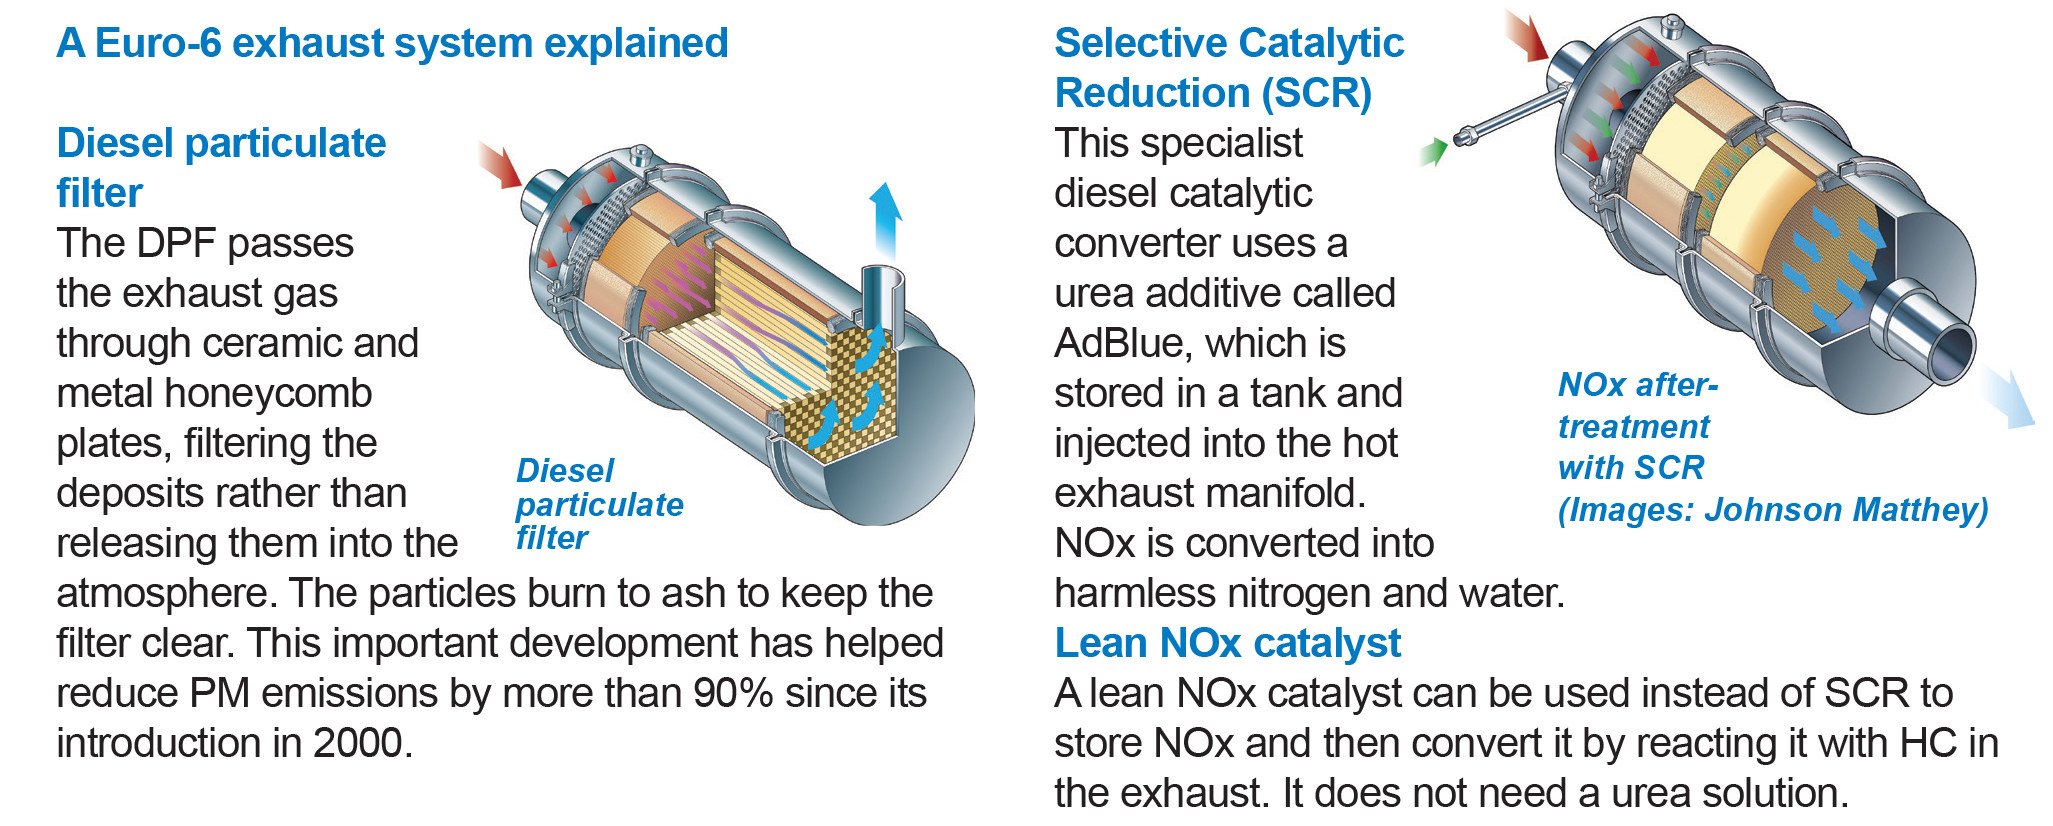 How to reduce nox,co,and co2 exhaust gases?